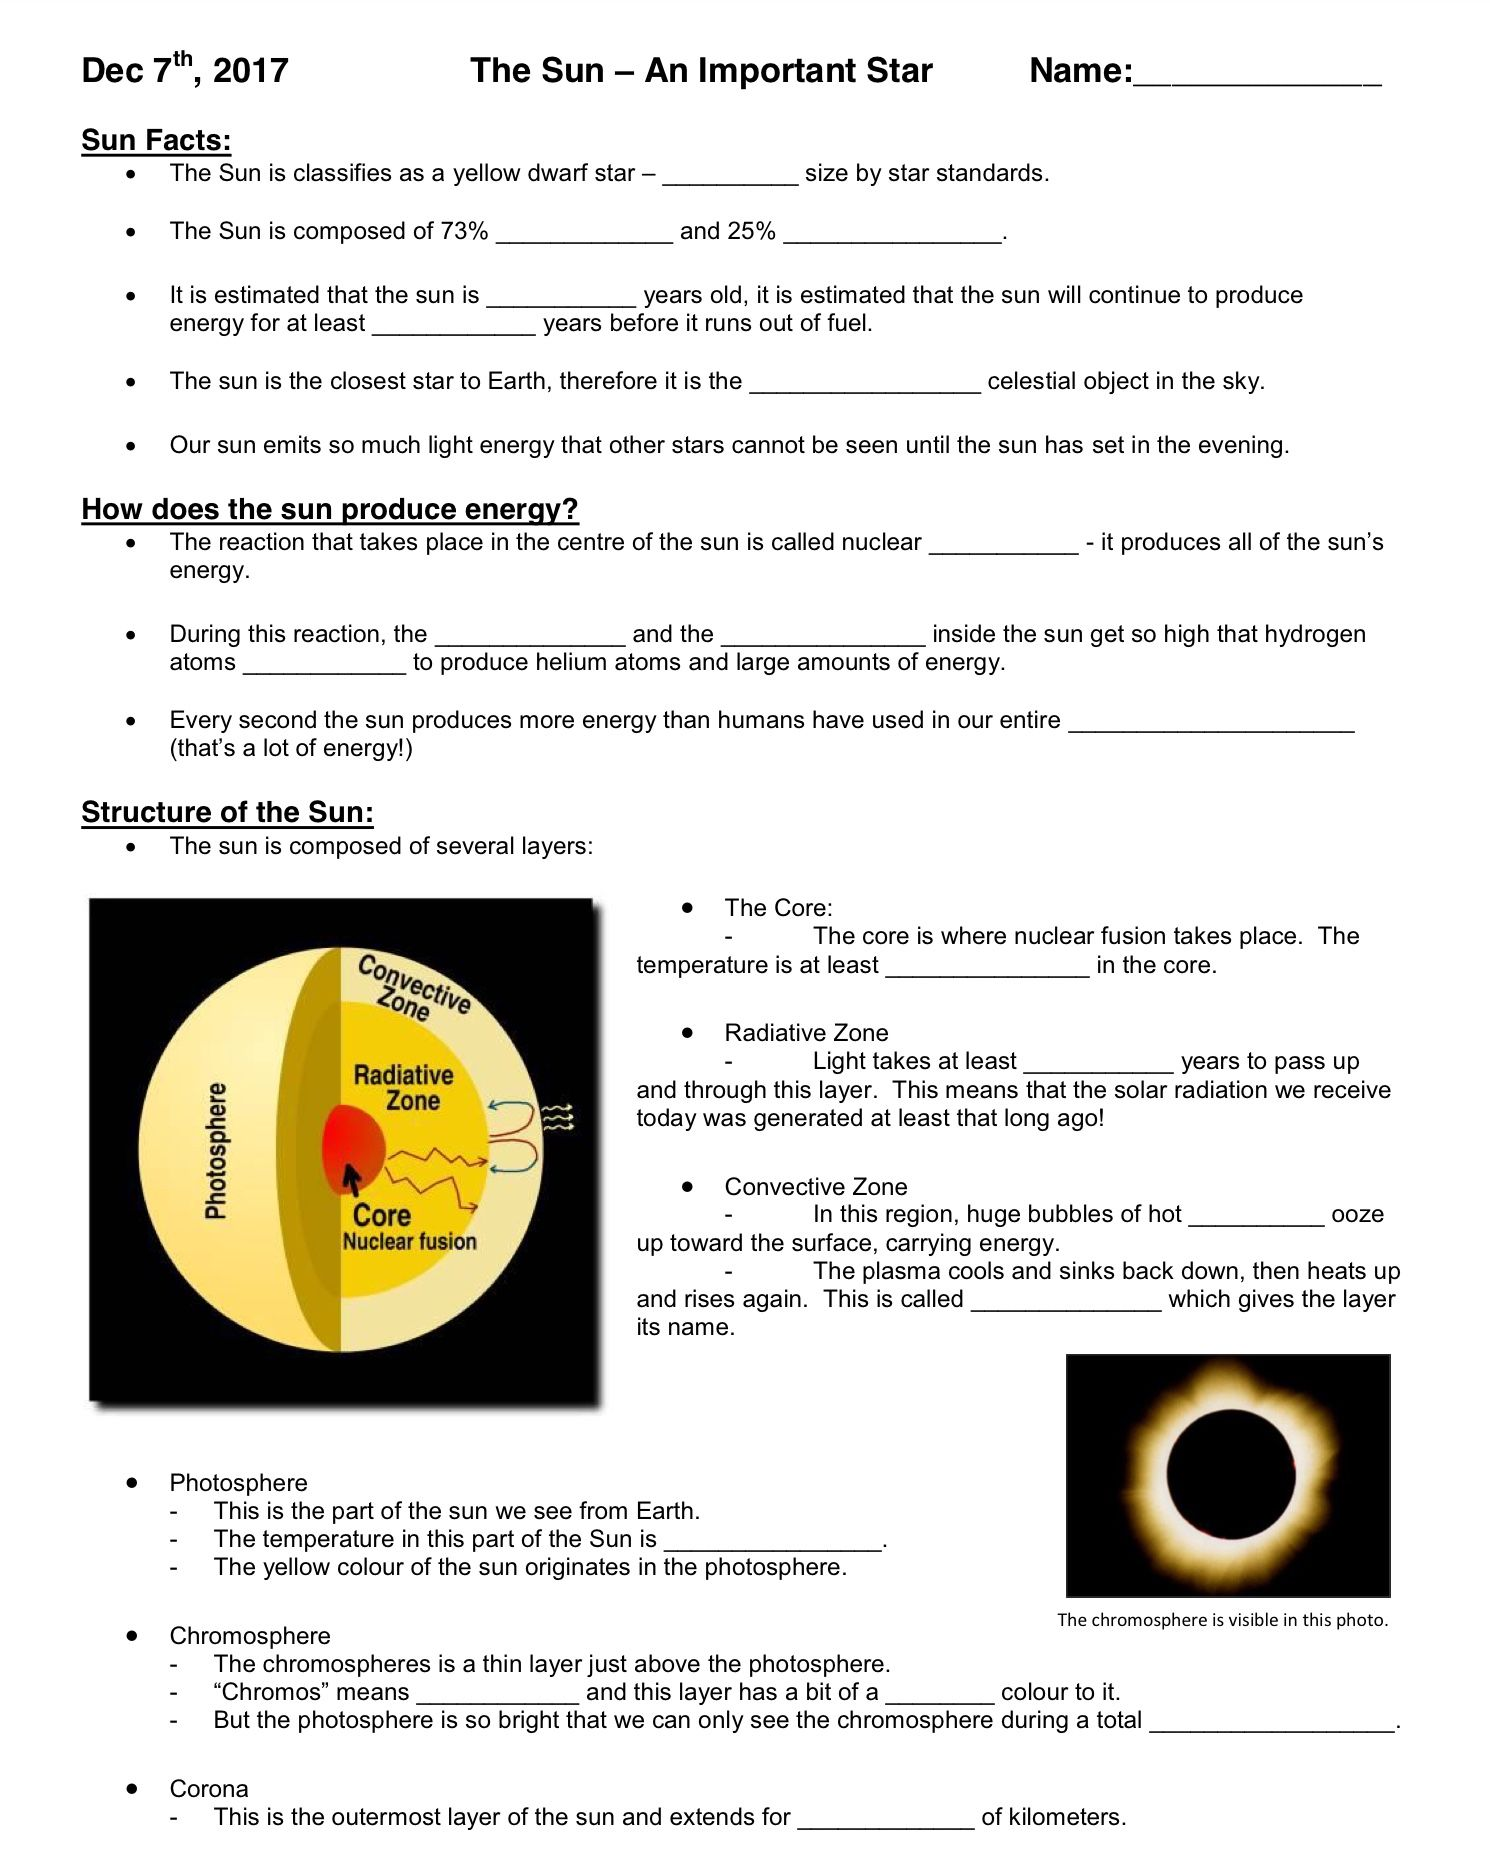 small resolution of The Sun - An Important Star - Worksheet - December 7